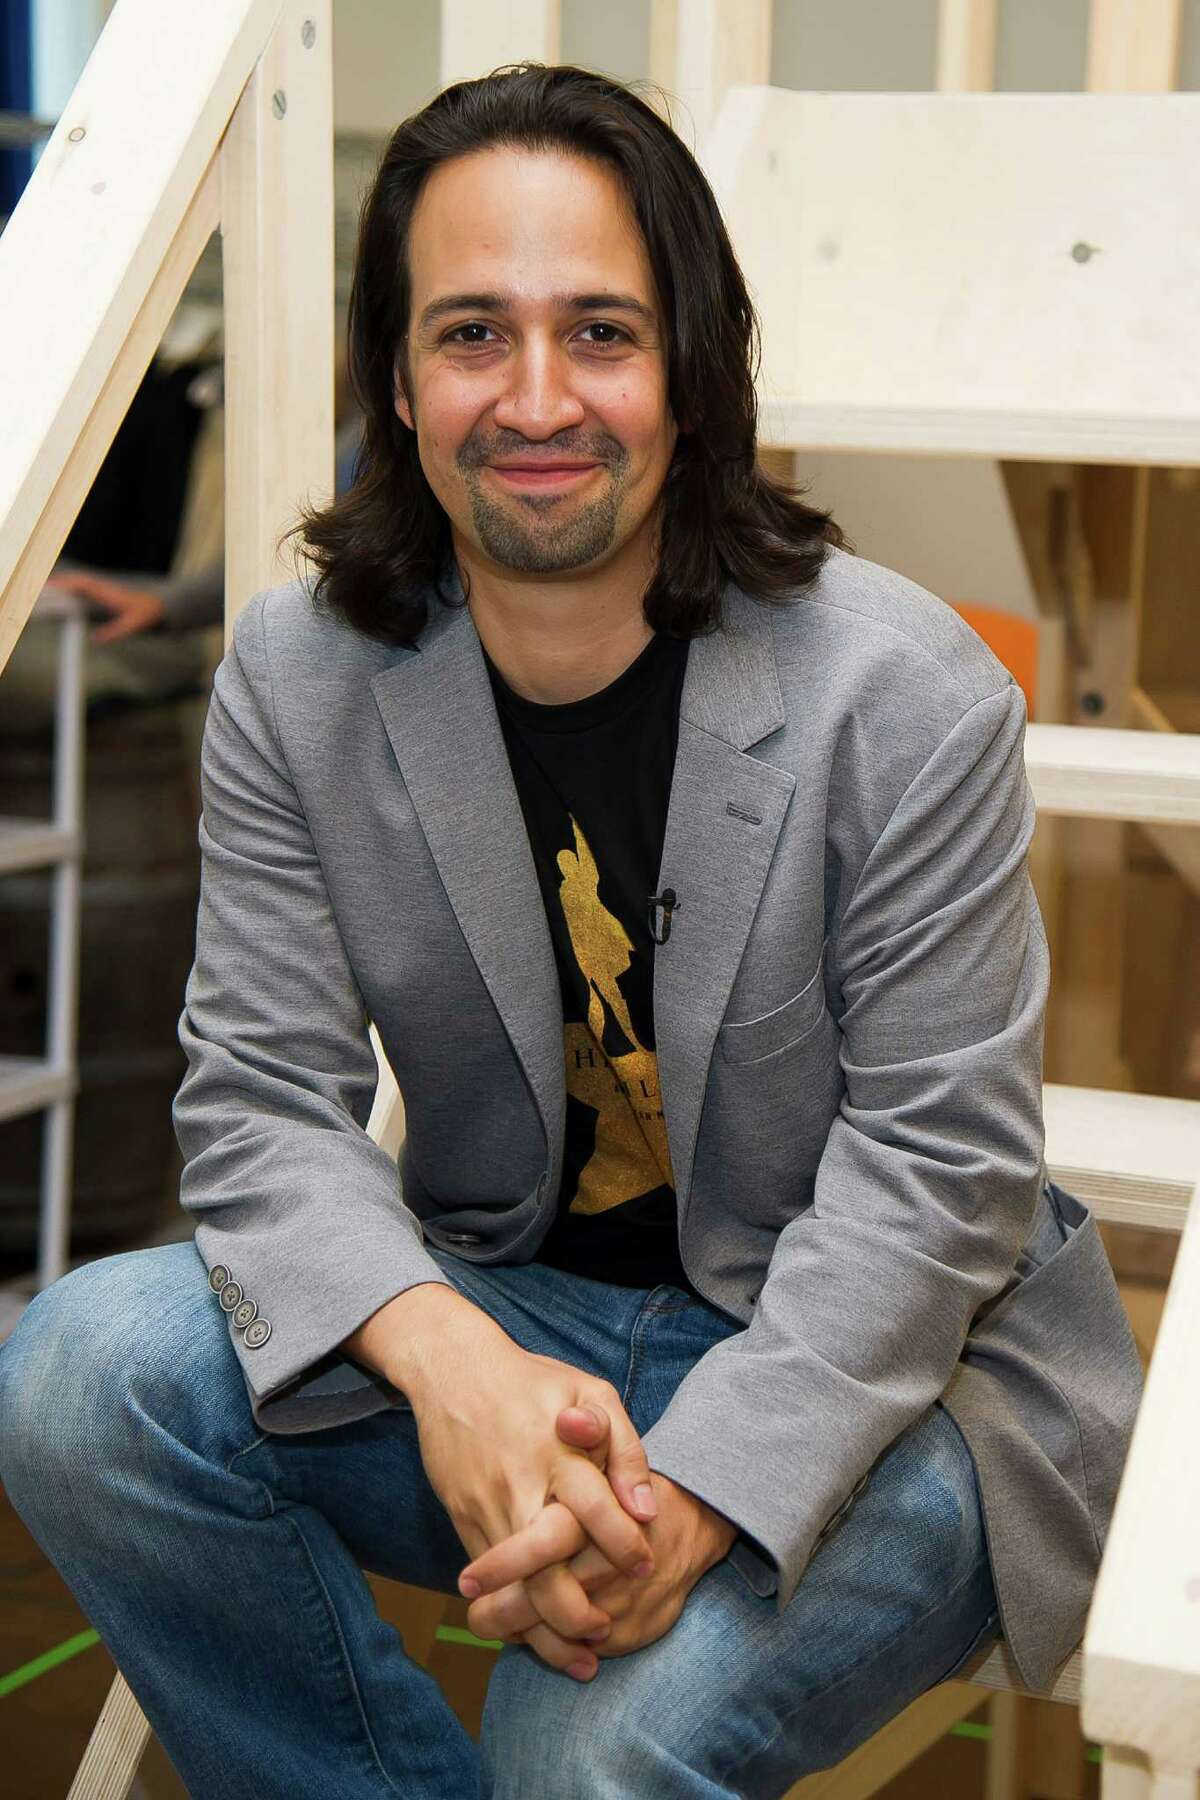 """Lin-Manuel Miranda has many irons in the fire, some related to """"Hamilton"""" as well as a major film role and songs."""